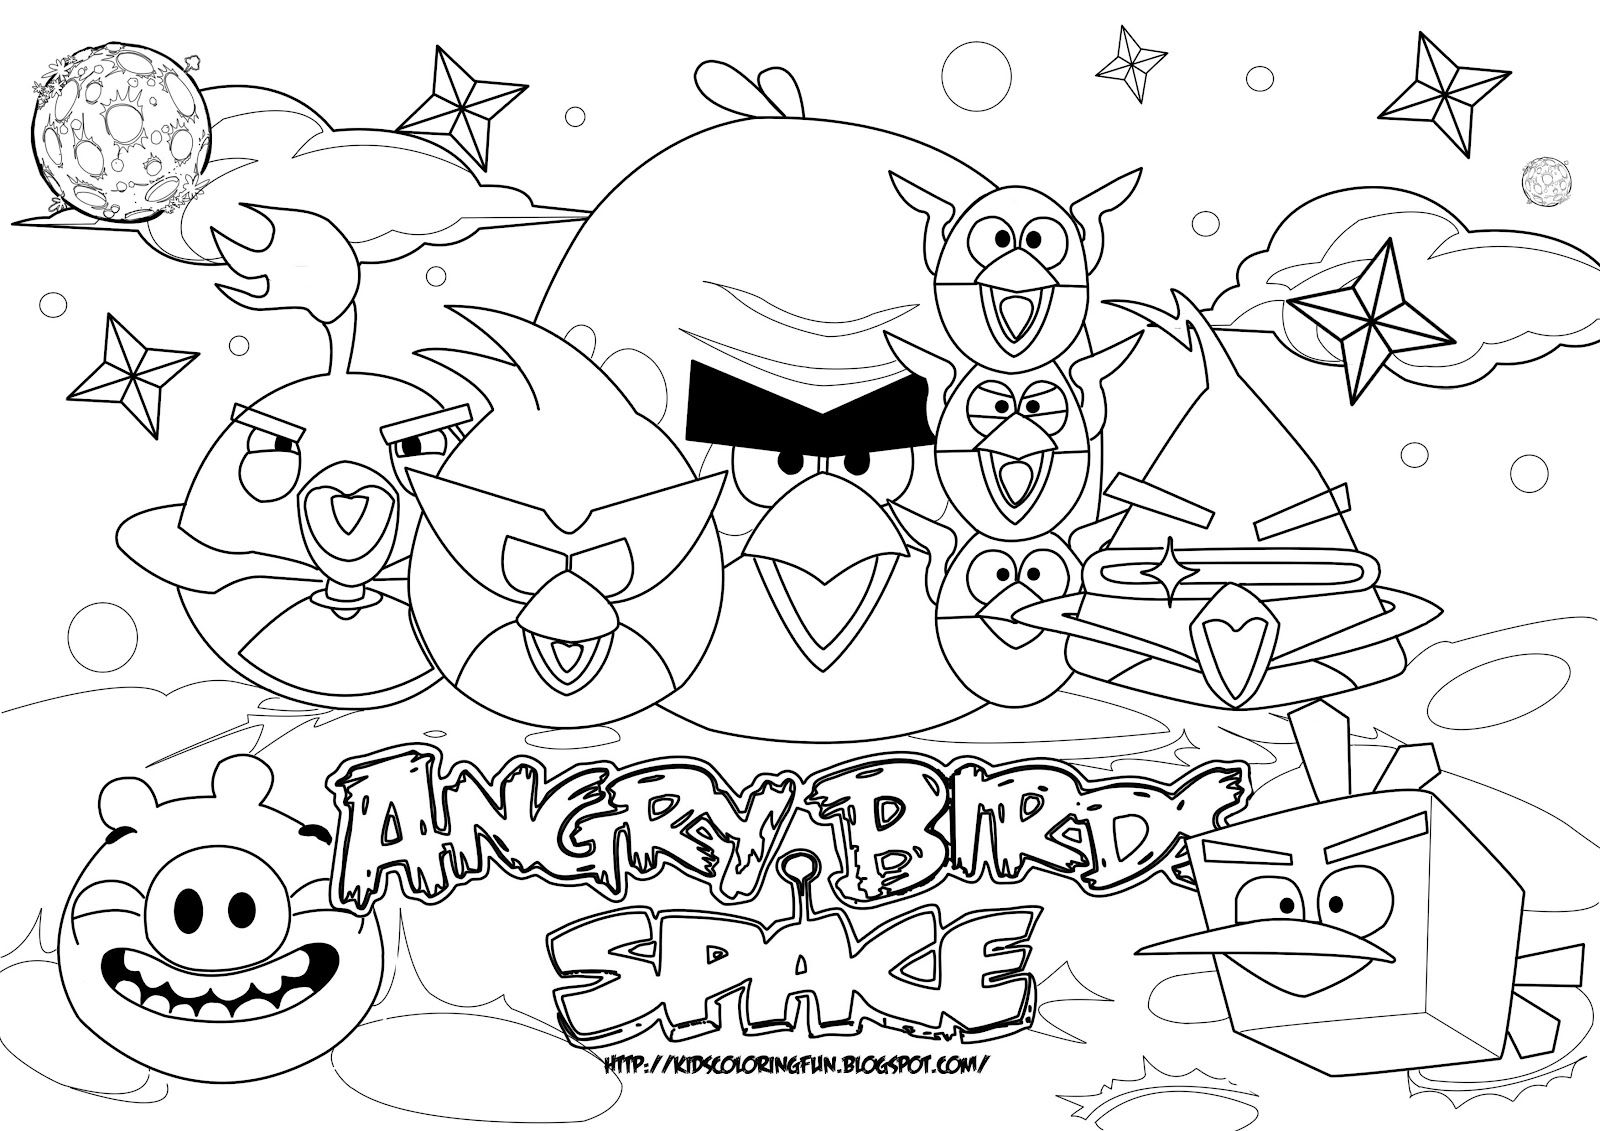 Adult Cute Free Angry Bird Coloring Pages Images top 1000 images about coloring pages on pinterest angry birds and star wars images